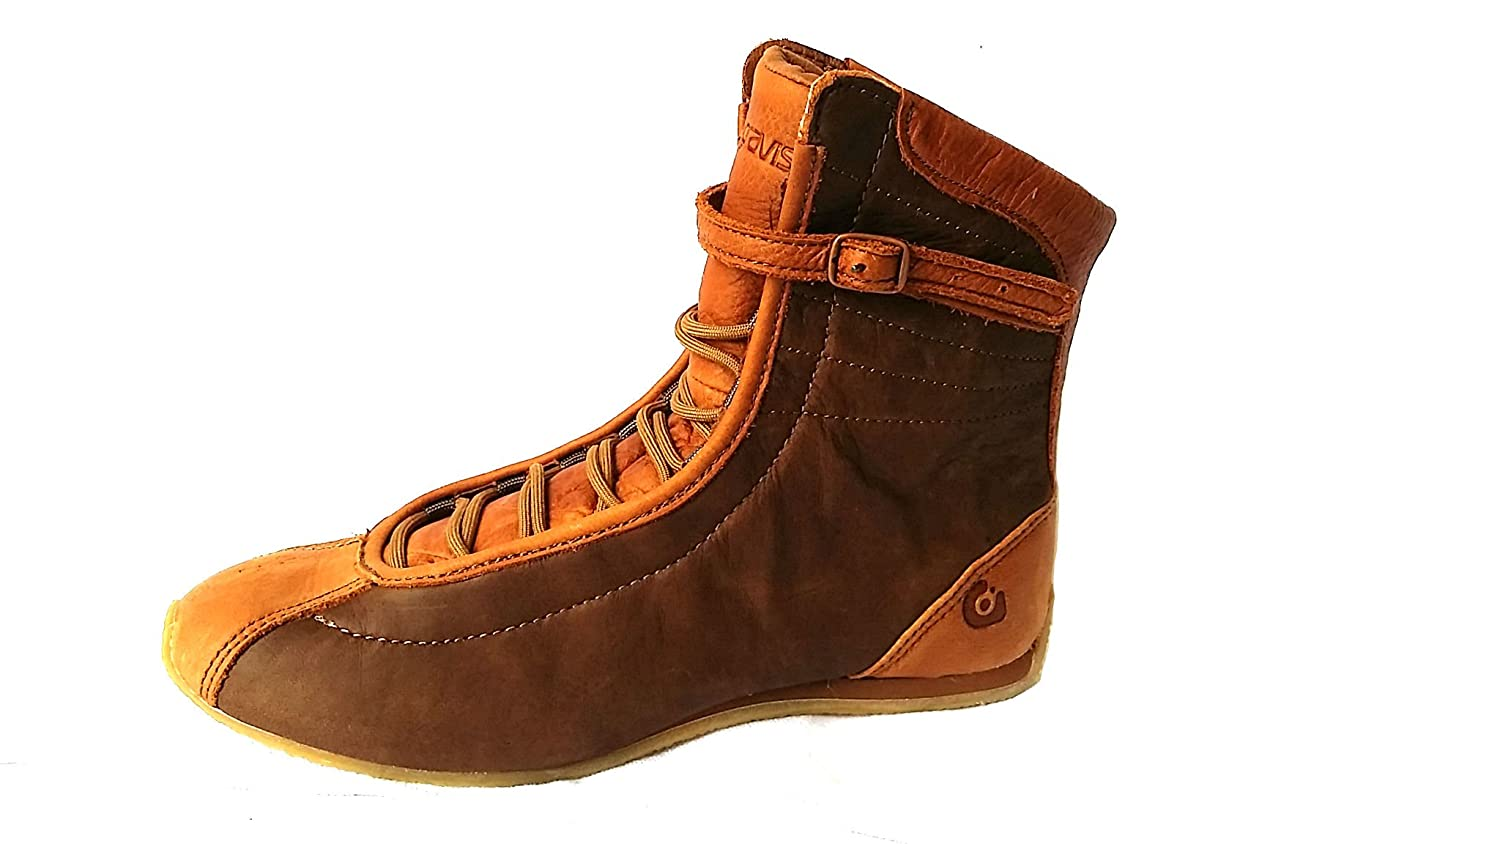 Gravis Misha Pride Skate Shoes Womens High Tops Lace up Brown Saddle Leather Sneakers Size